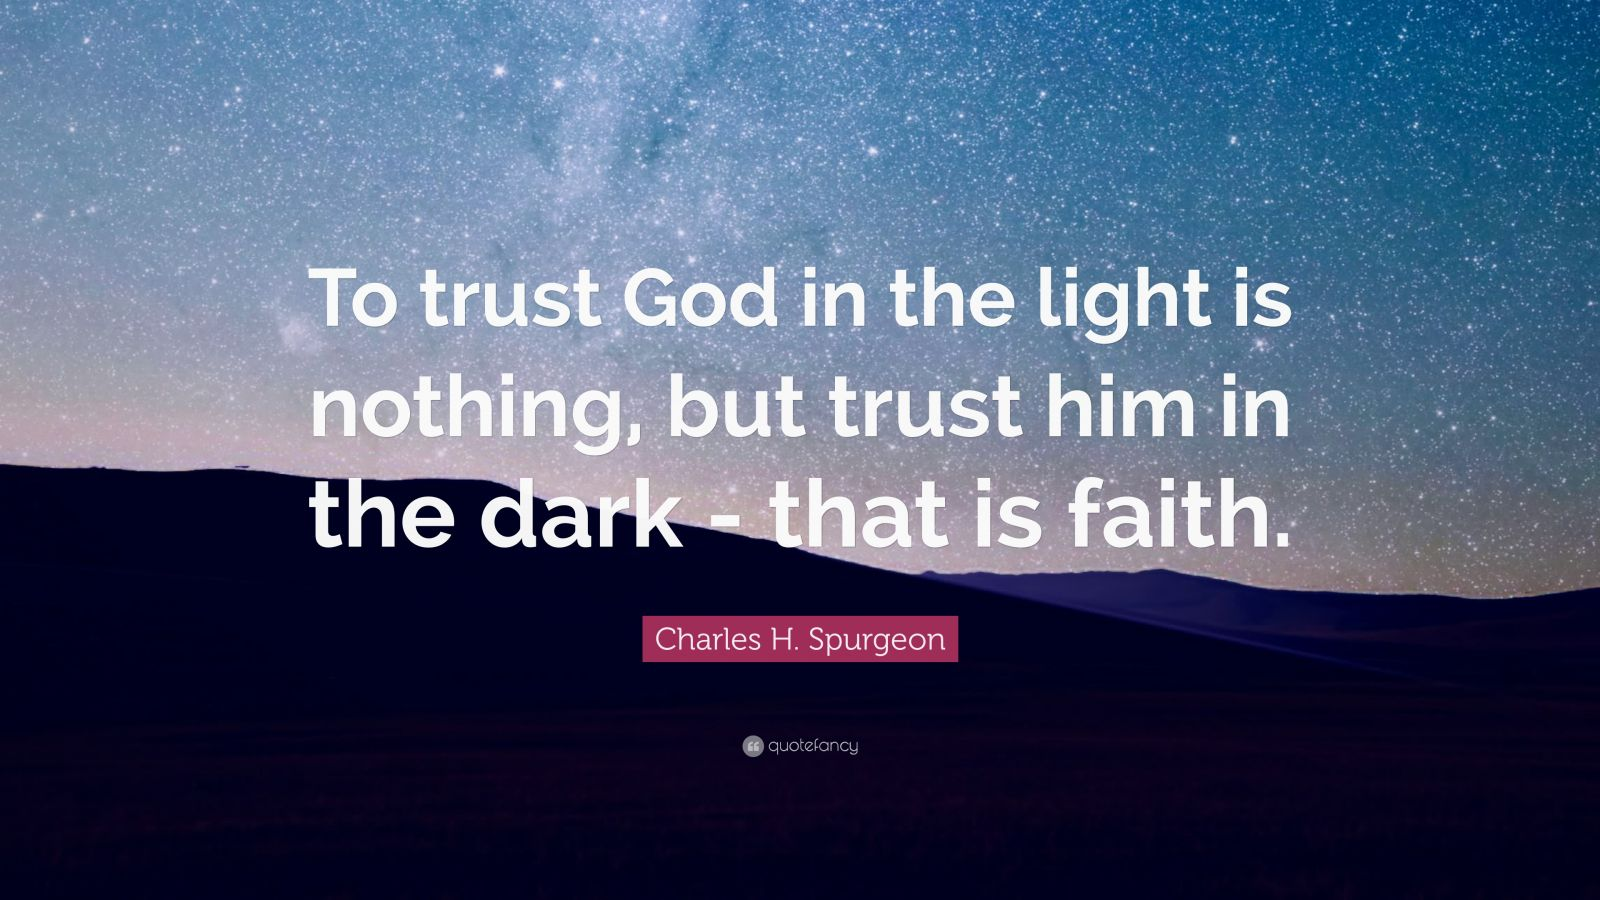 Nick Vujicic Quotes Wallpaper Charles H Spurgeon Quote To Trust God In The Light Is